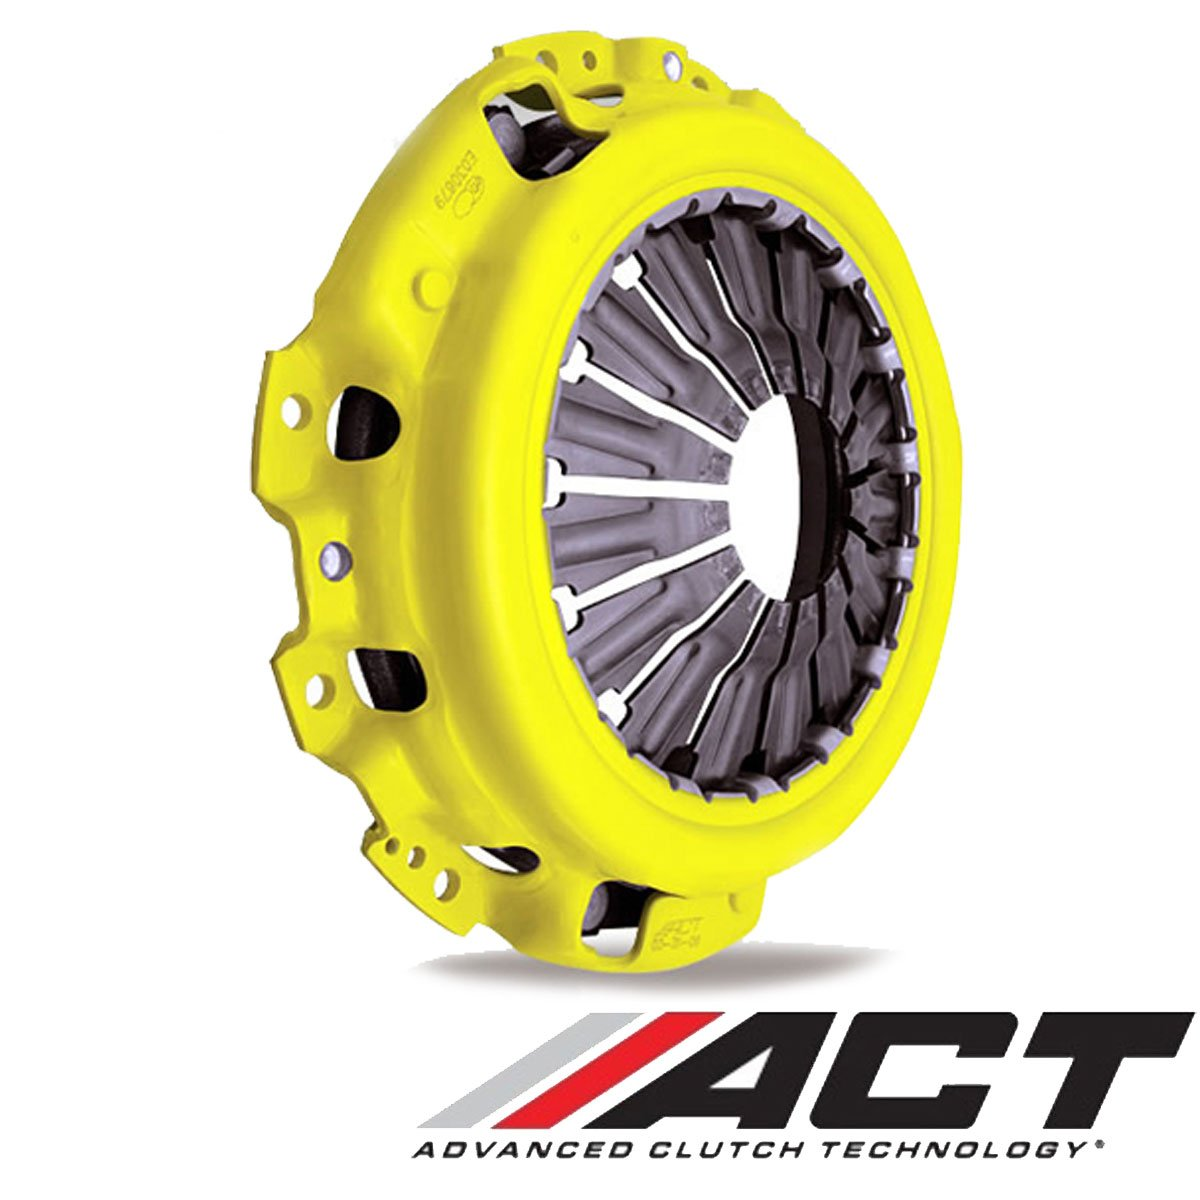 ACT N013 Act Heavy Duty Pressure P by ACT (Image #1)